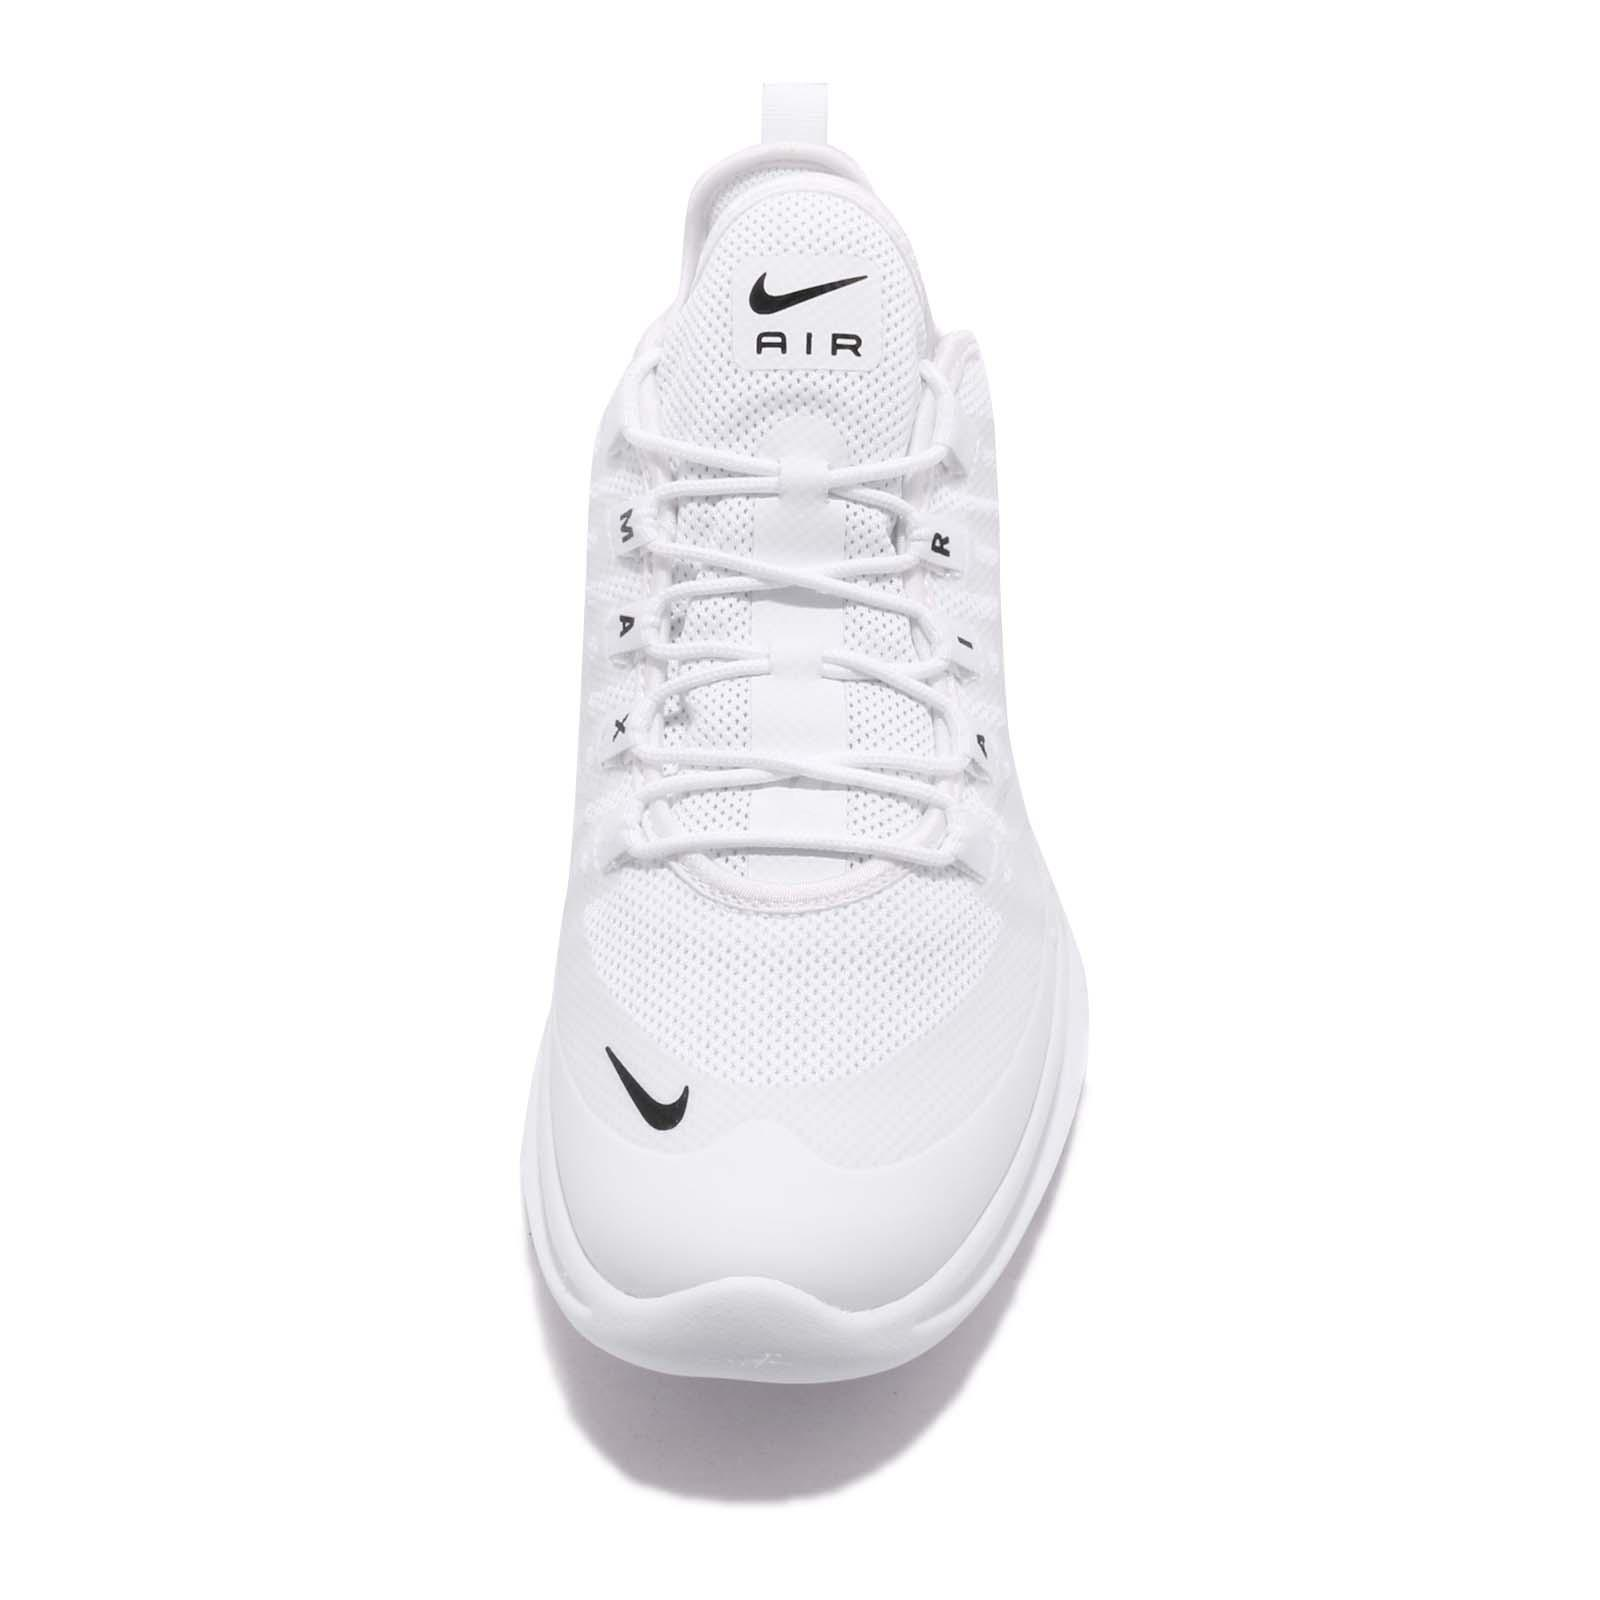 9344e0b89c3 Nike Air Max Axis White Black Mens Running Shoes Sneakers .